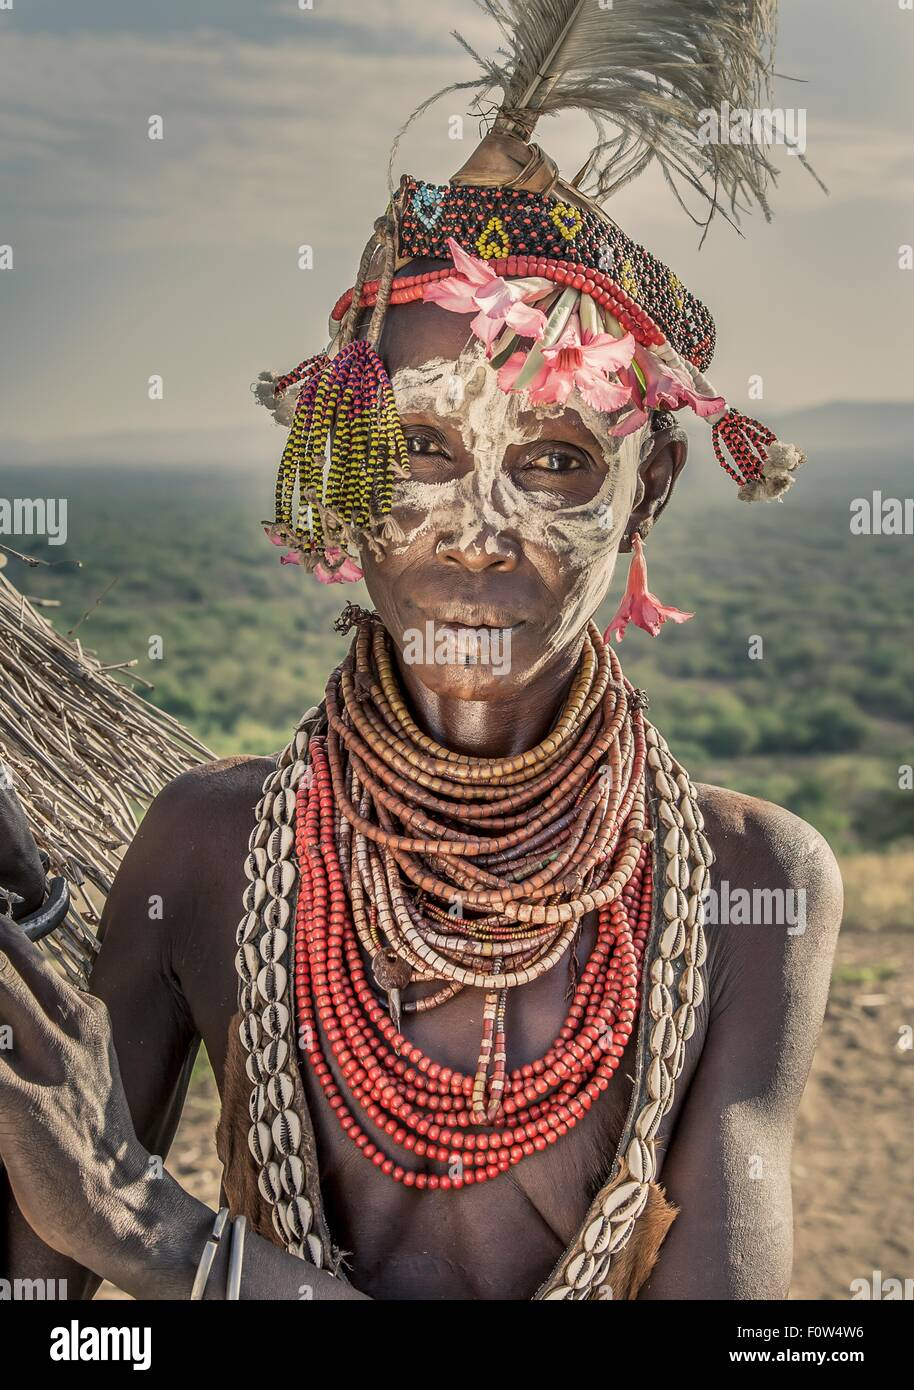 Portrait of mature woman from Karo tribe wearing traditional costume, Ethiopia, Africa - Stock Image